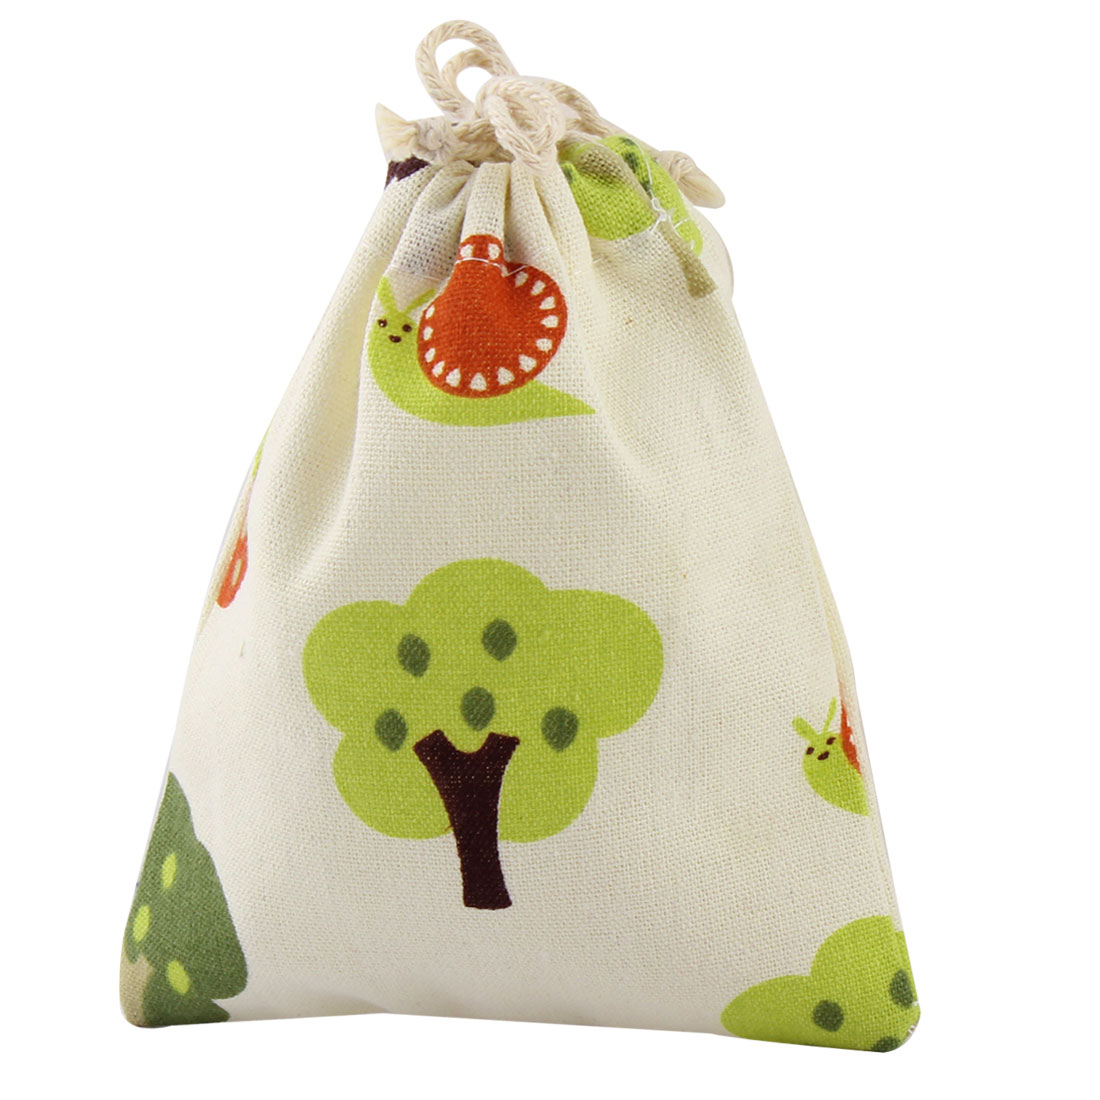 Outdoor Camping Travel Linen Bag Clothes Socks Storage Drawstring Pouch